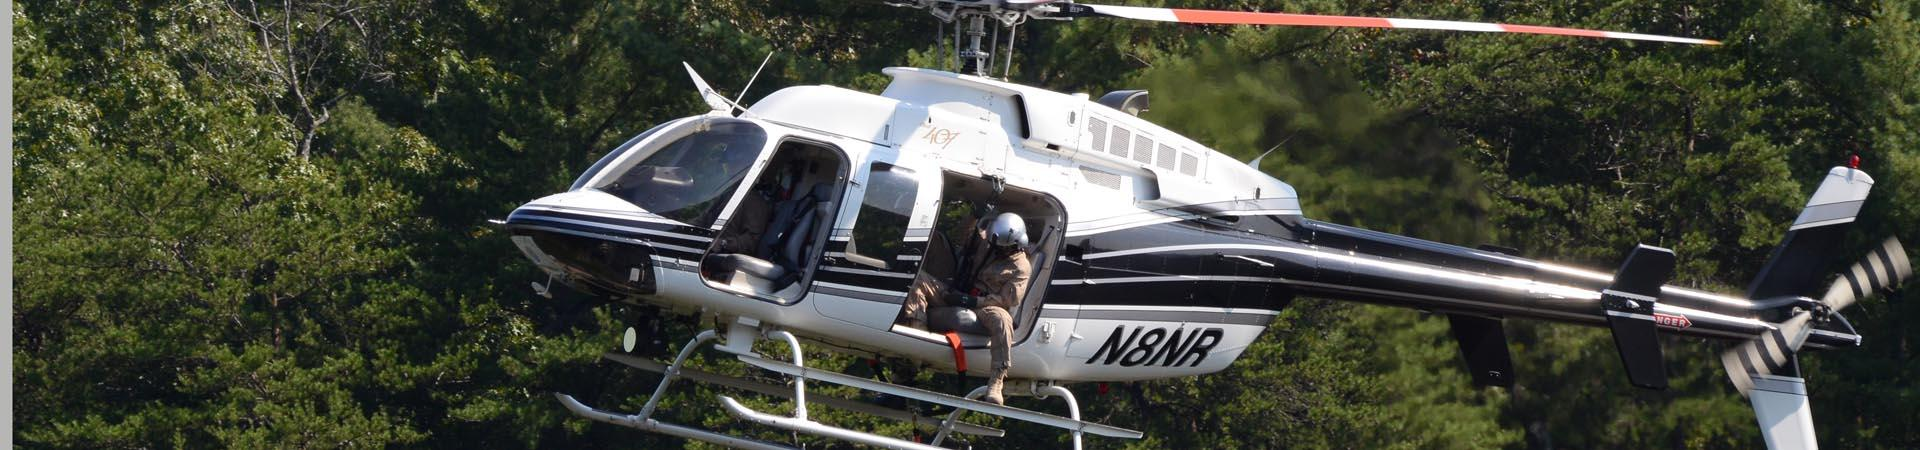 DNR helicopter in long-line rescue training